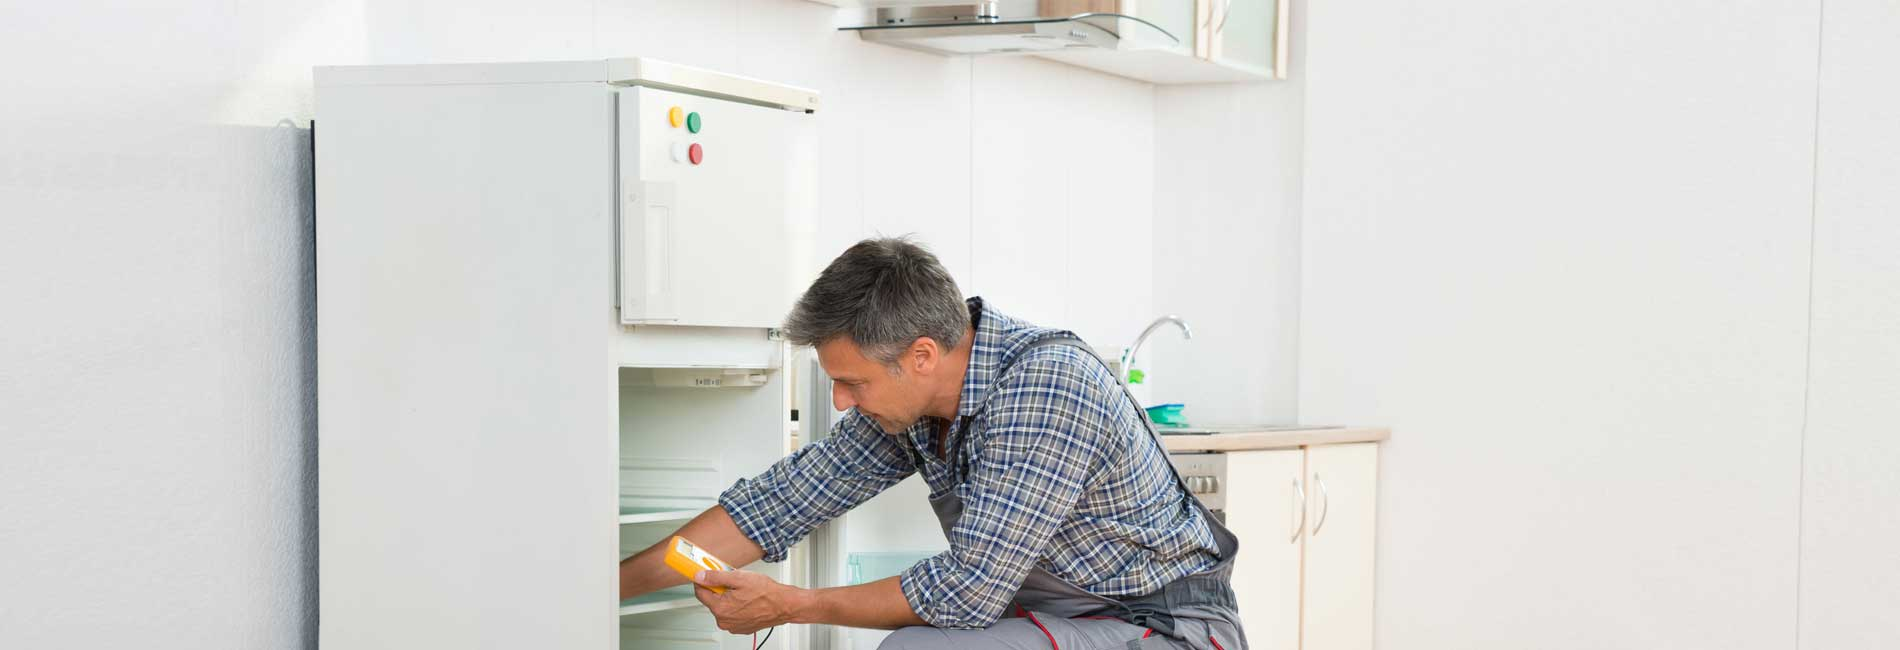 Kelvinator Fridge Repair in Ramapuram